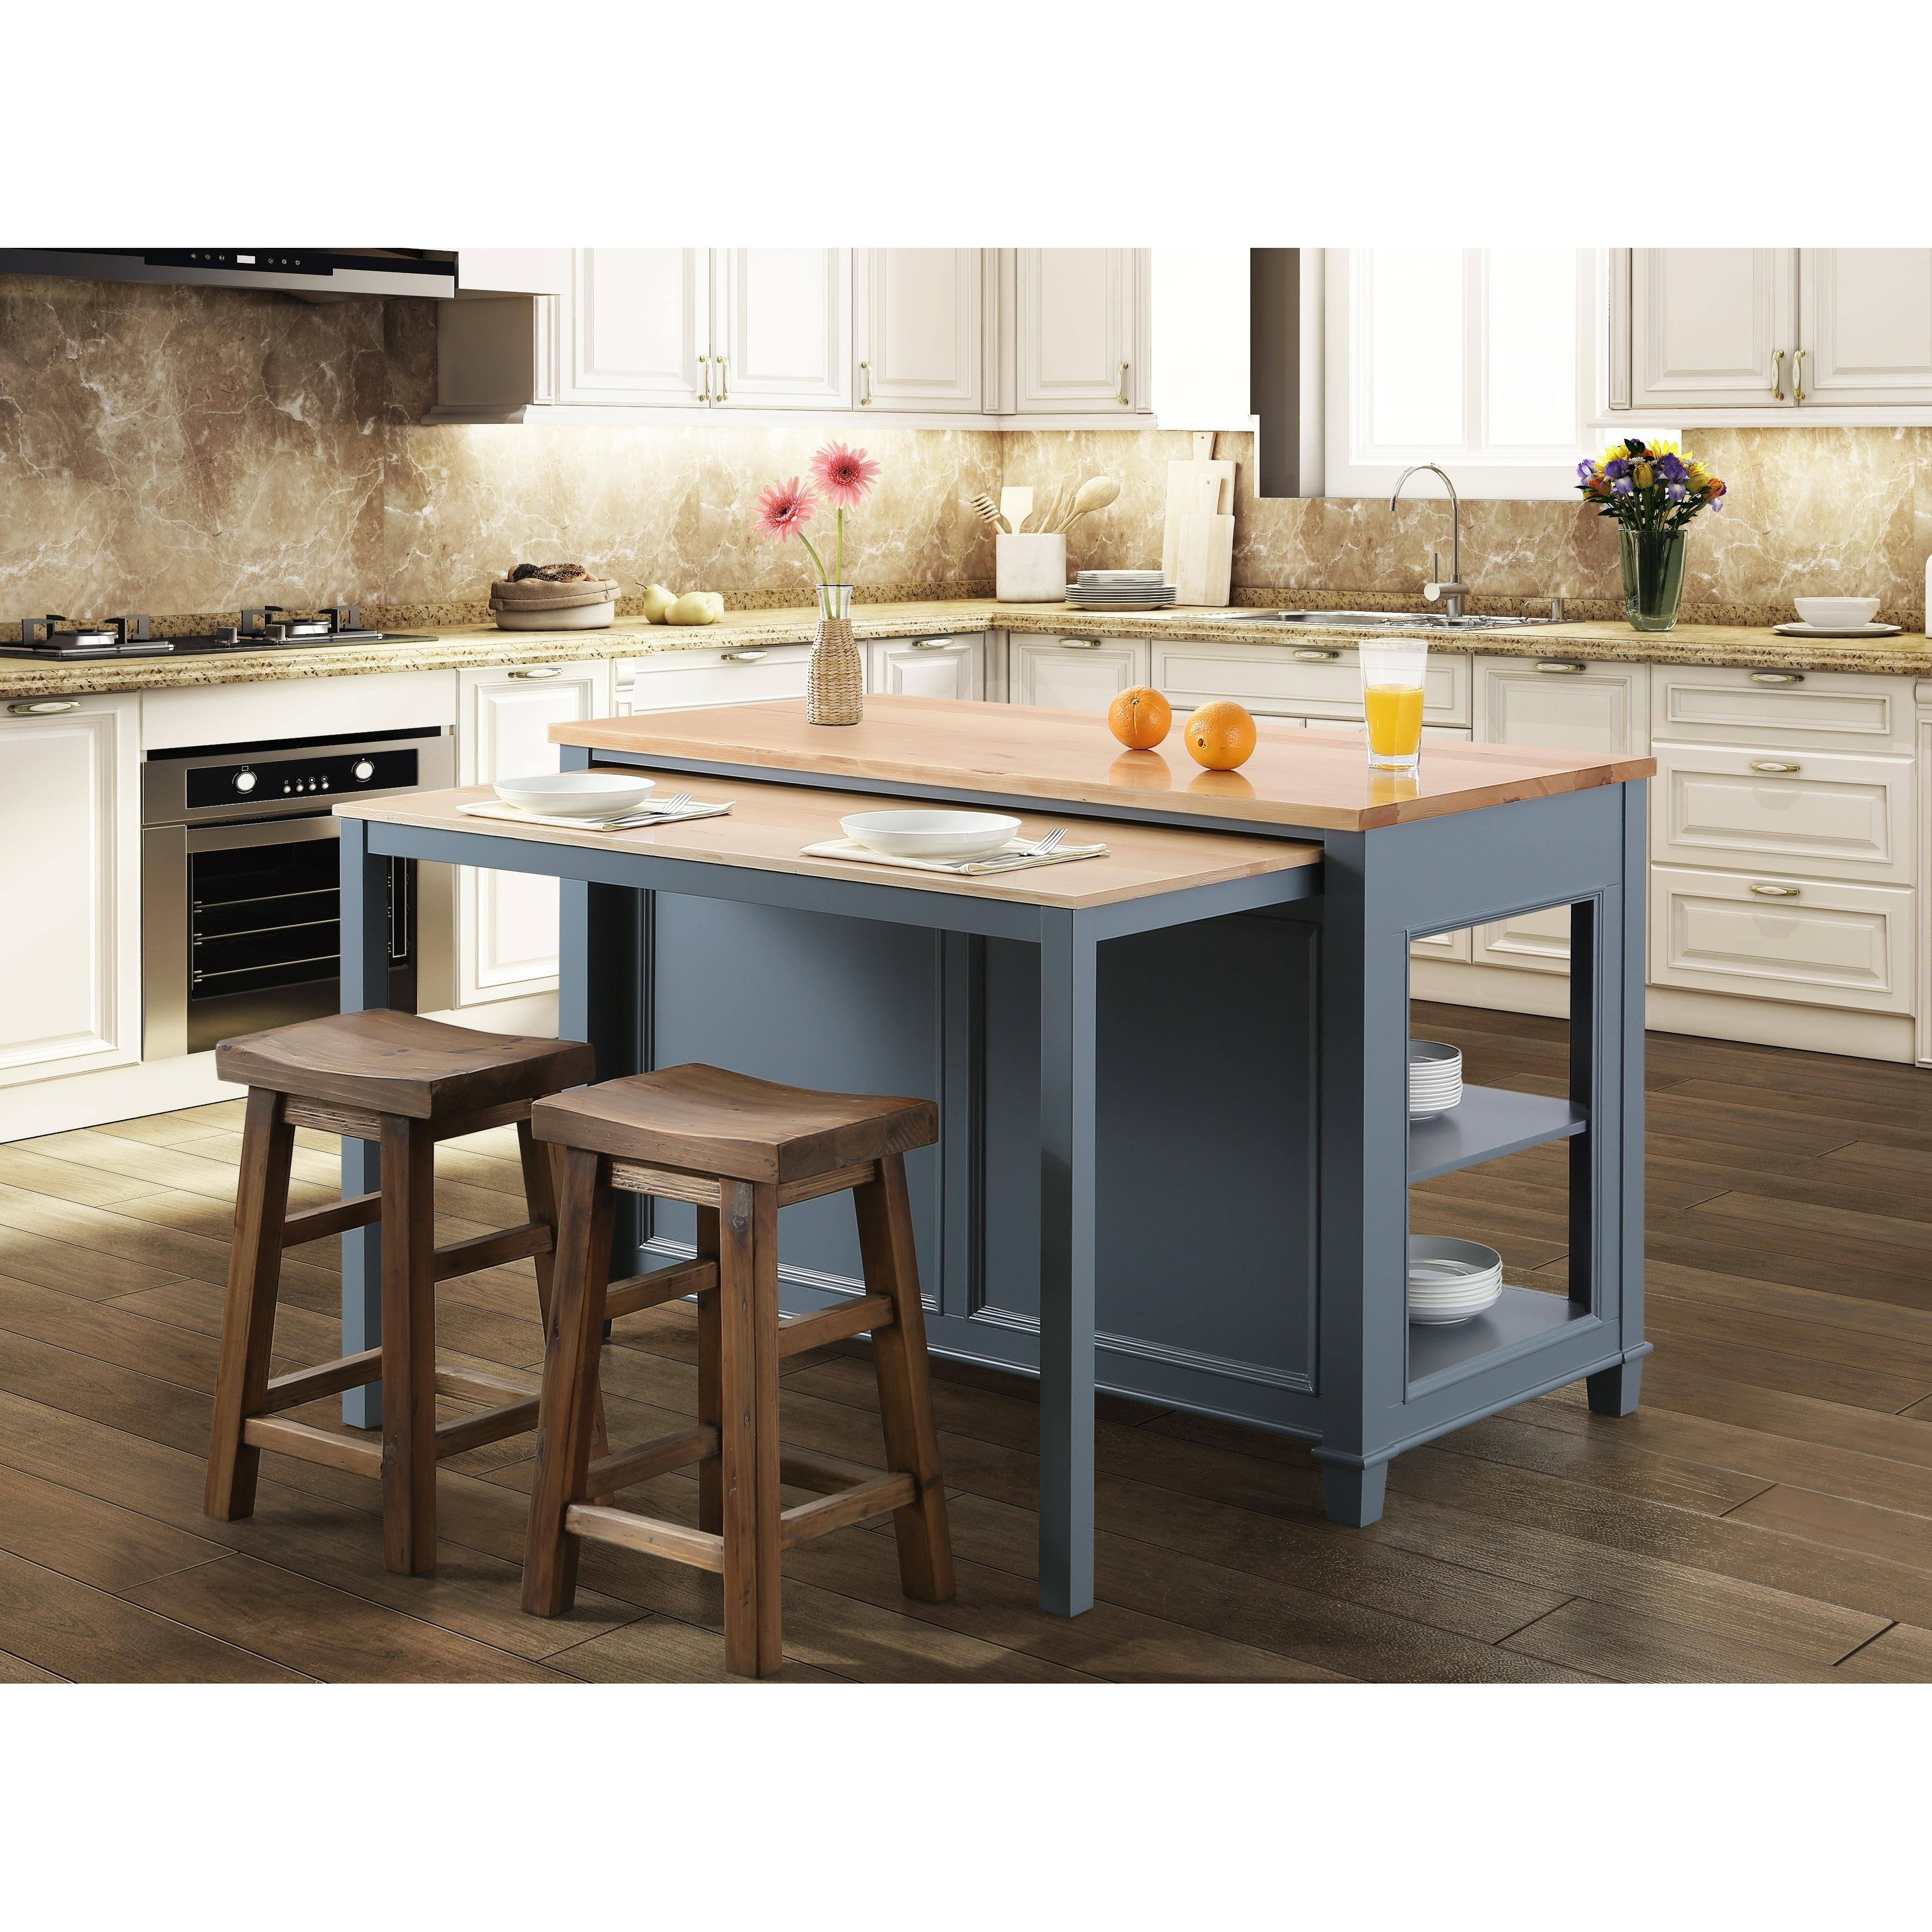 Shop Medley 54 In Kitchen Island With Slide Out Table In Gray